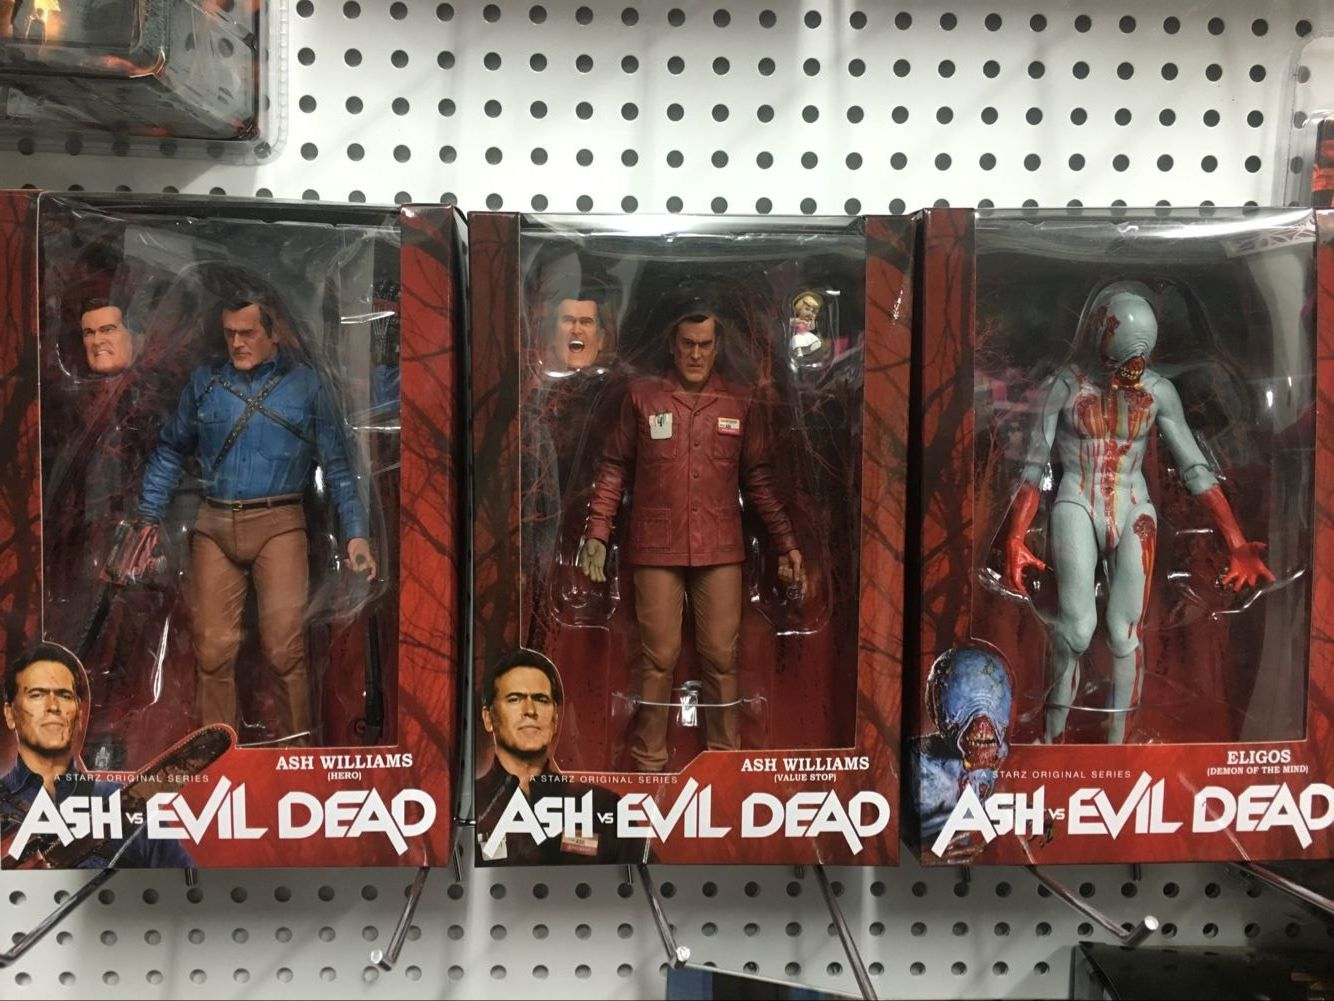 NECA The Evil Dead Ash Vs Evil Dead Ash Williams Eligos 3 pcs/set PVC Action Figure Collectible Model Toy 18cm KT3427 neca the evil dead ash vs evil dead ash williams eligos pvc action figure collectible model toy 18cm kt3427